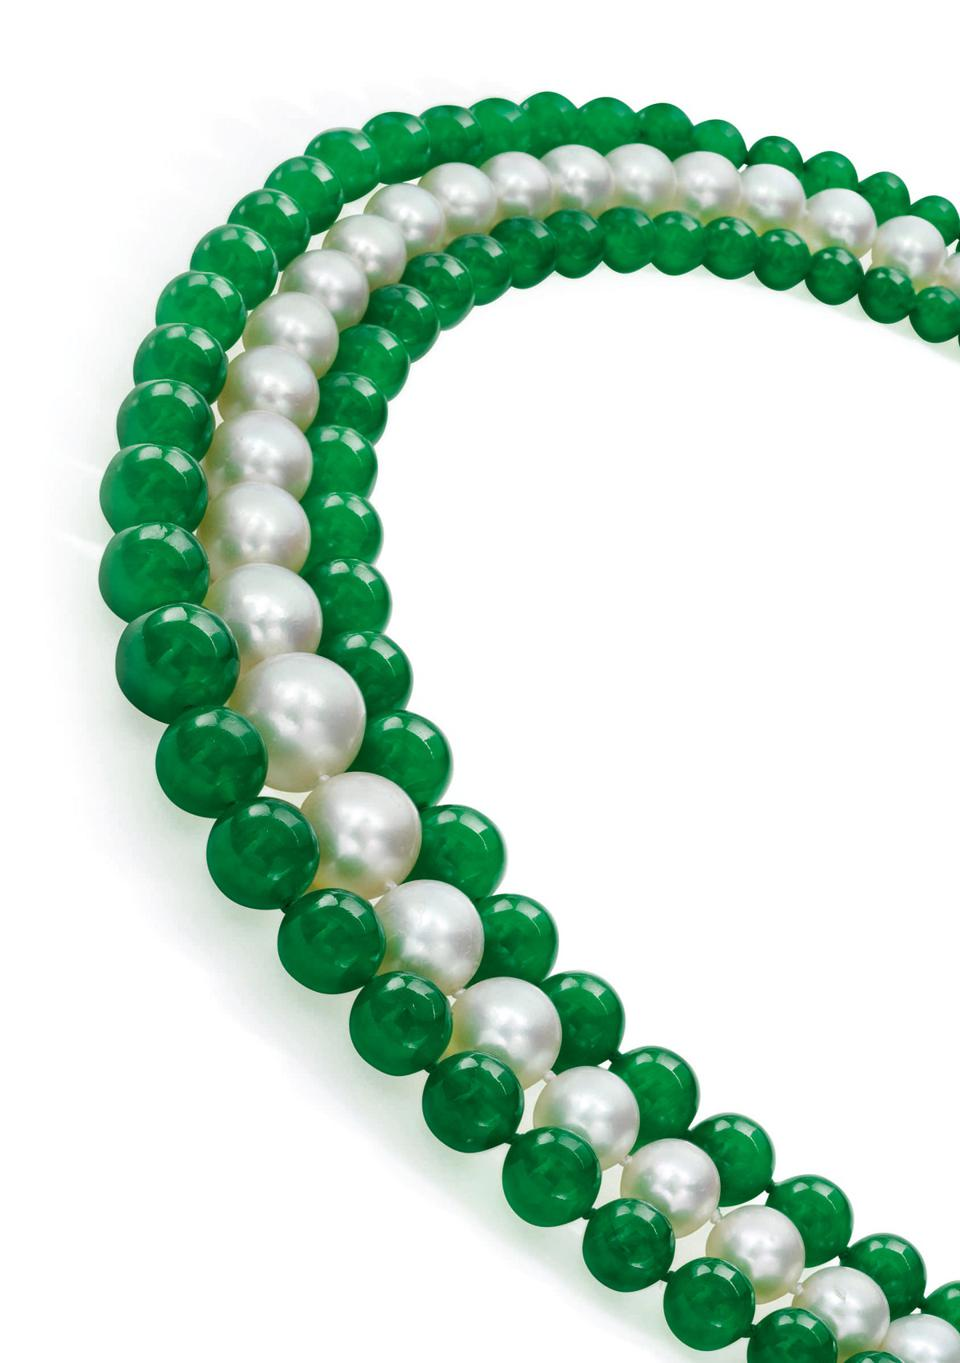 Jadeite, natural pearl and diamond necklace by Raymond Yard fetched $1.6 million